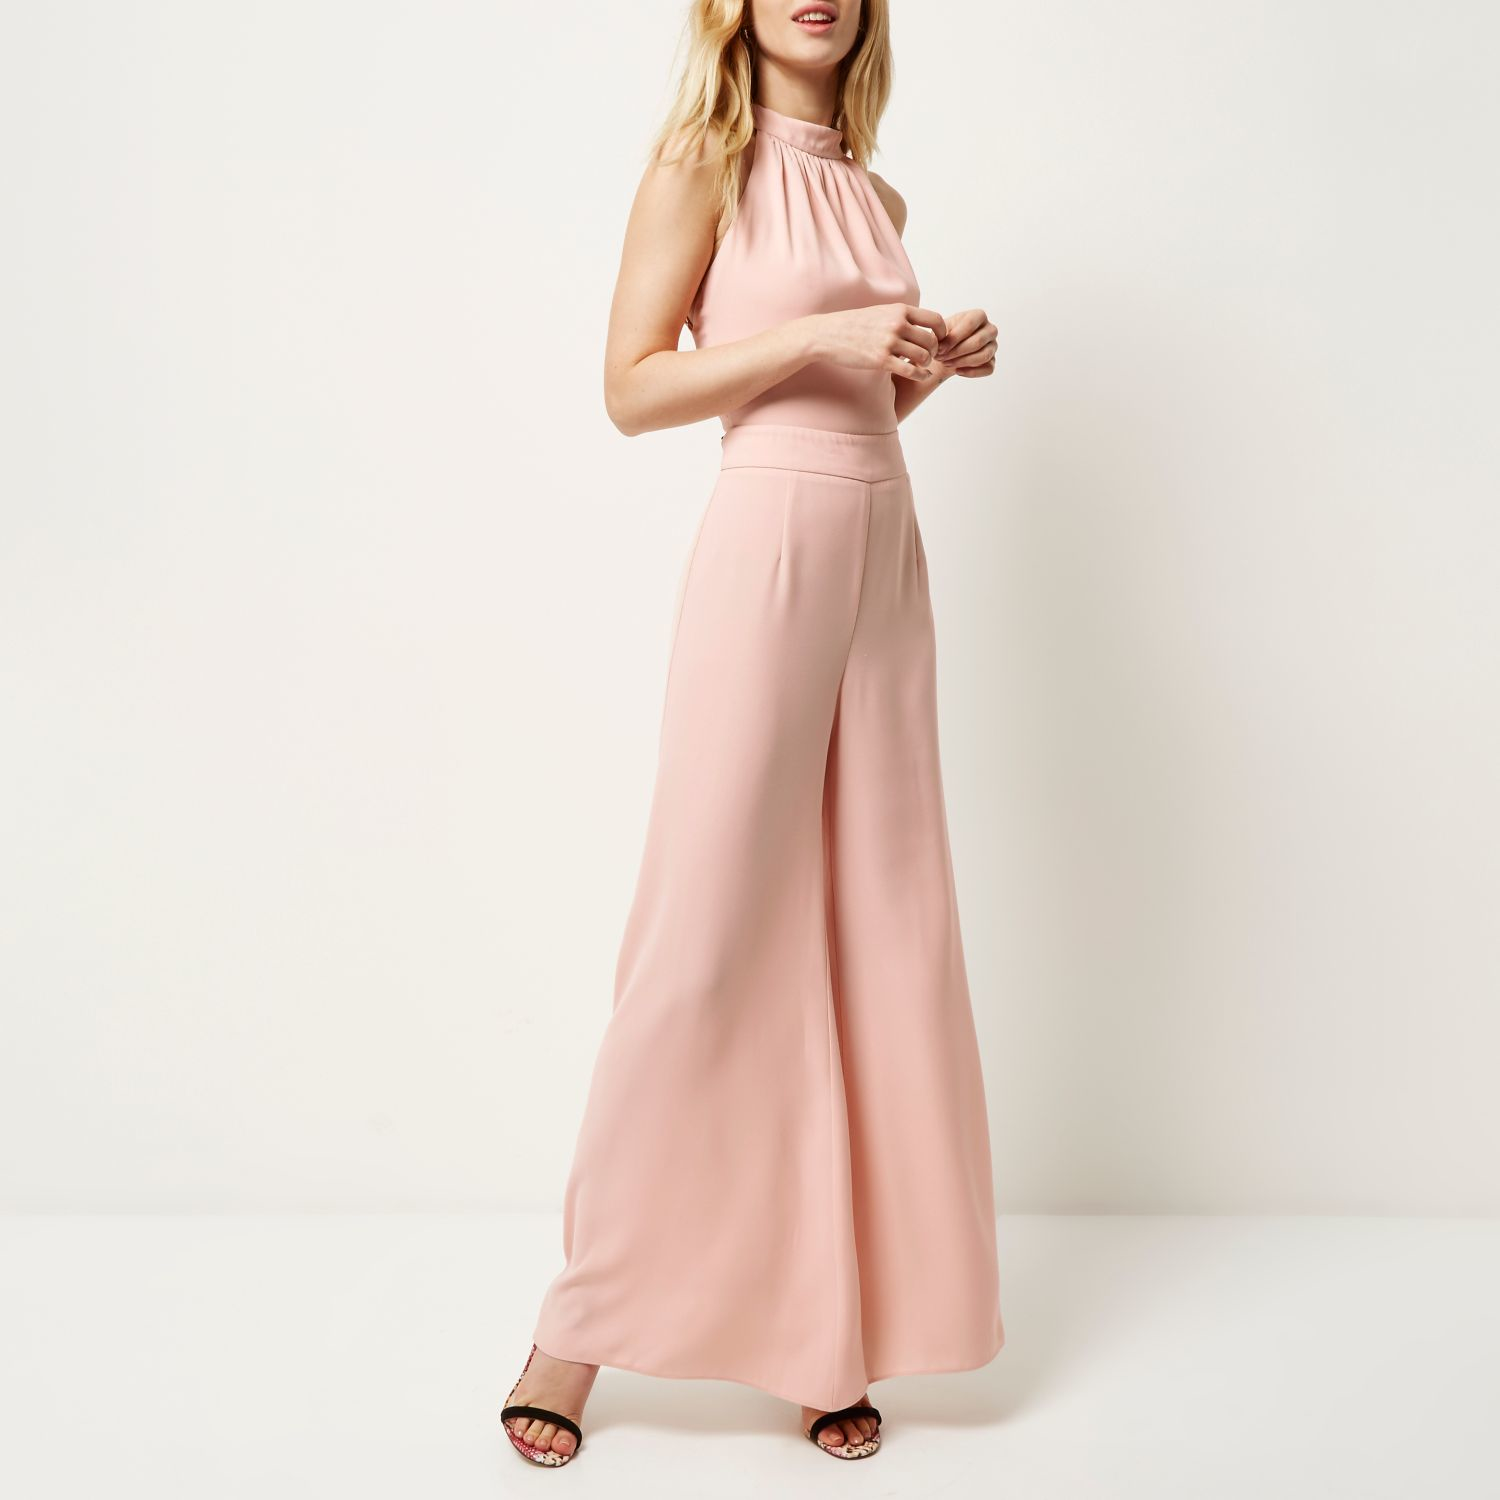 a1100d67598e Lyst - River Island Pink Halter Neck Wide Leg Jumpsuit in Pink